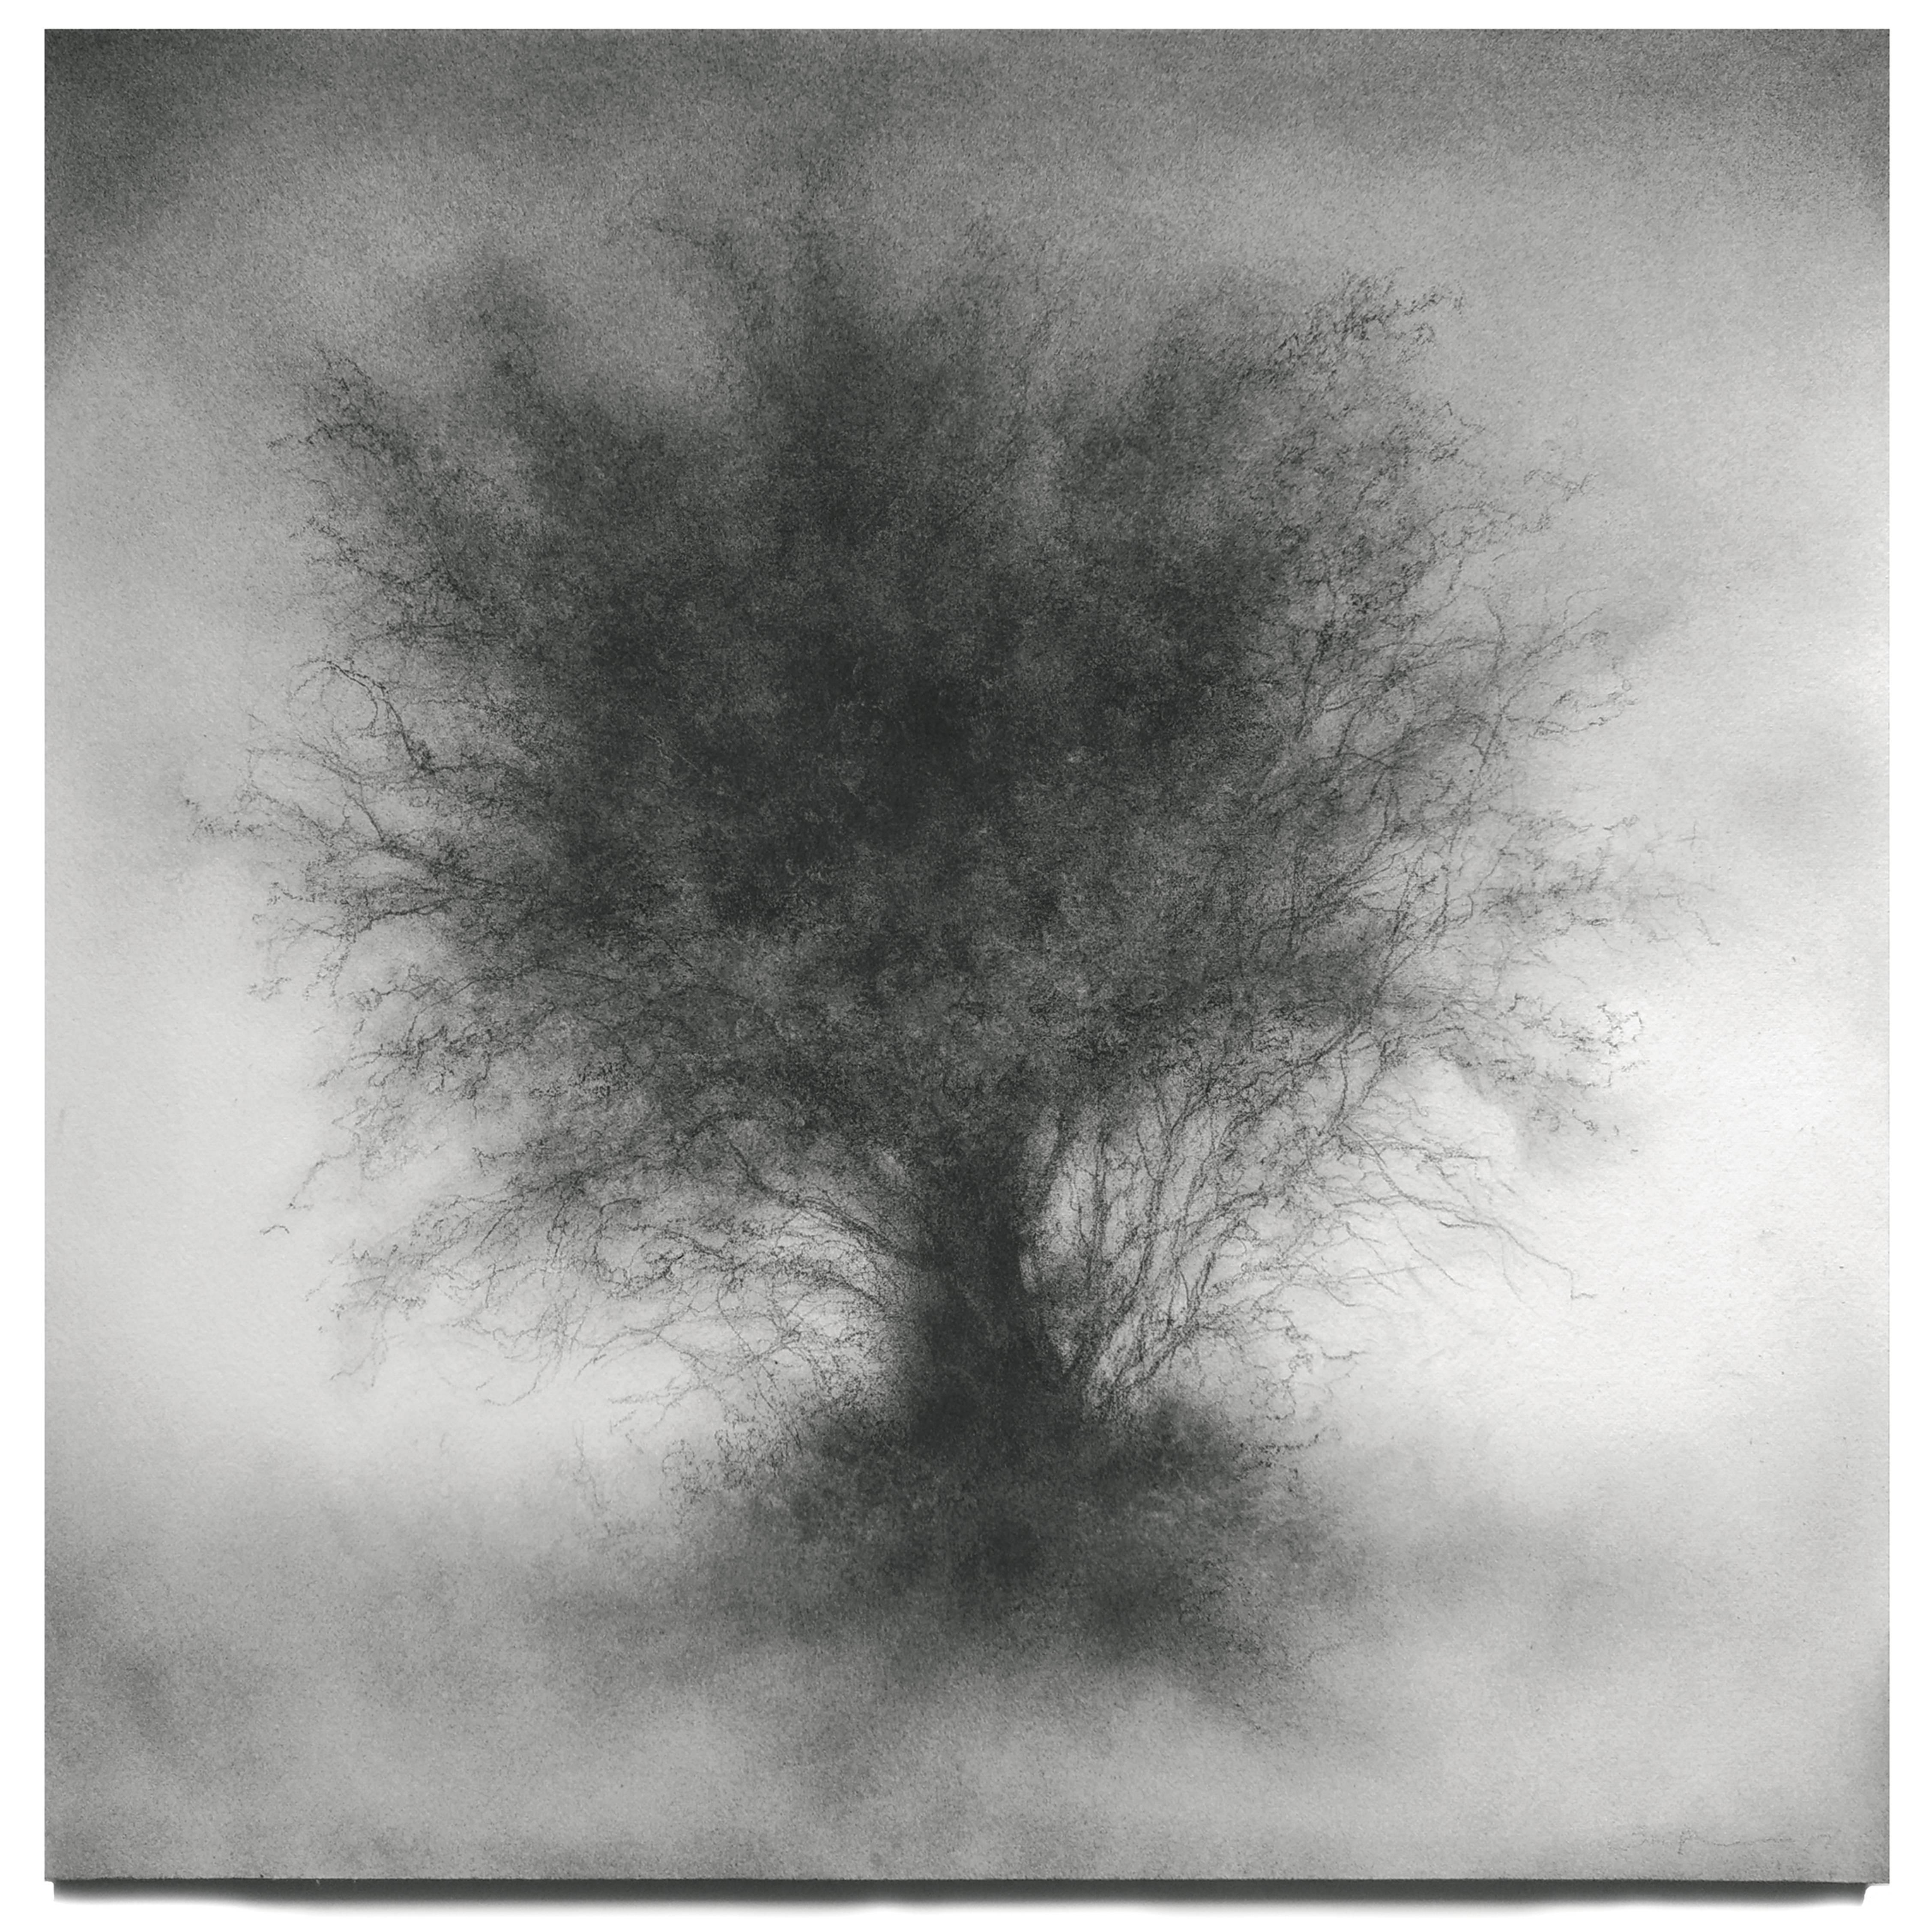 Whippersnapper (Realistic Charcoal Landscape Drawing on Panel of a Large Tree)